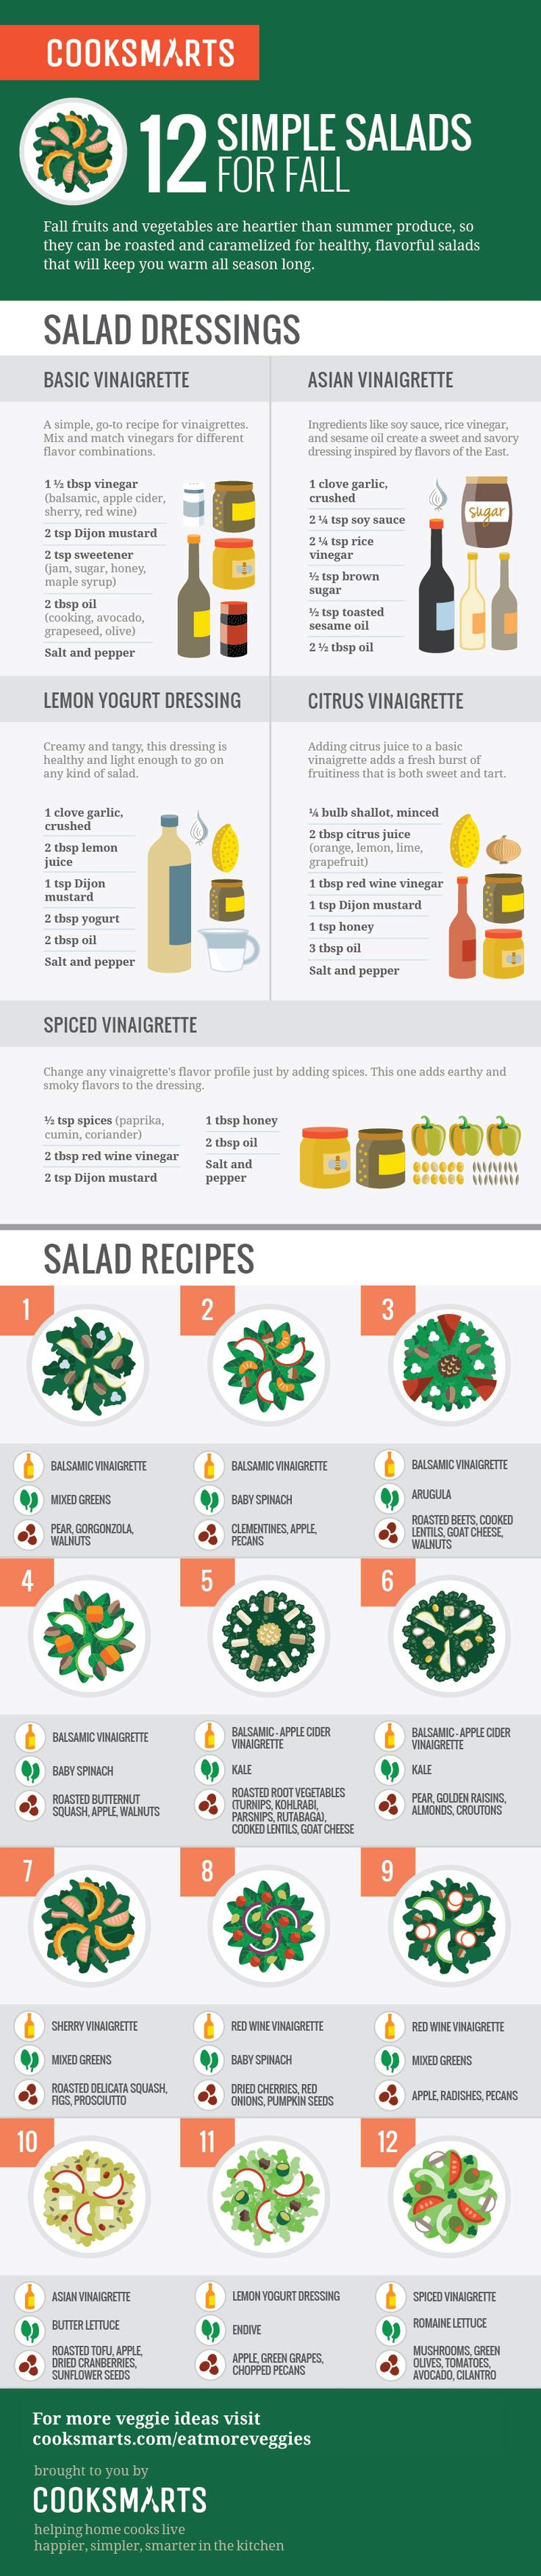 Simple Fall Salads via @CookSmarts #infographic #eatmoreveggies